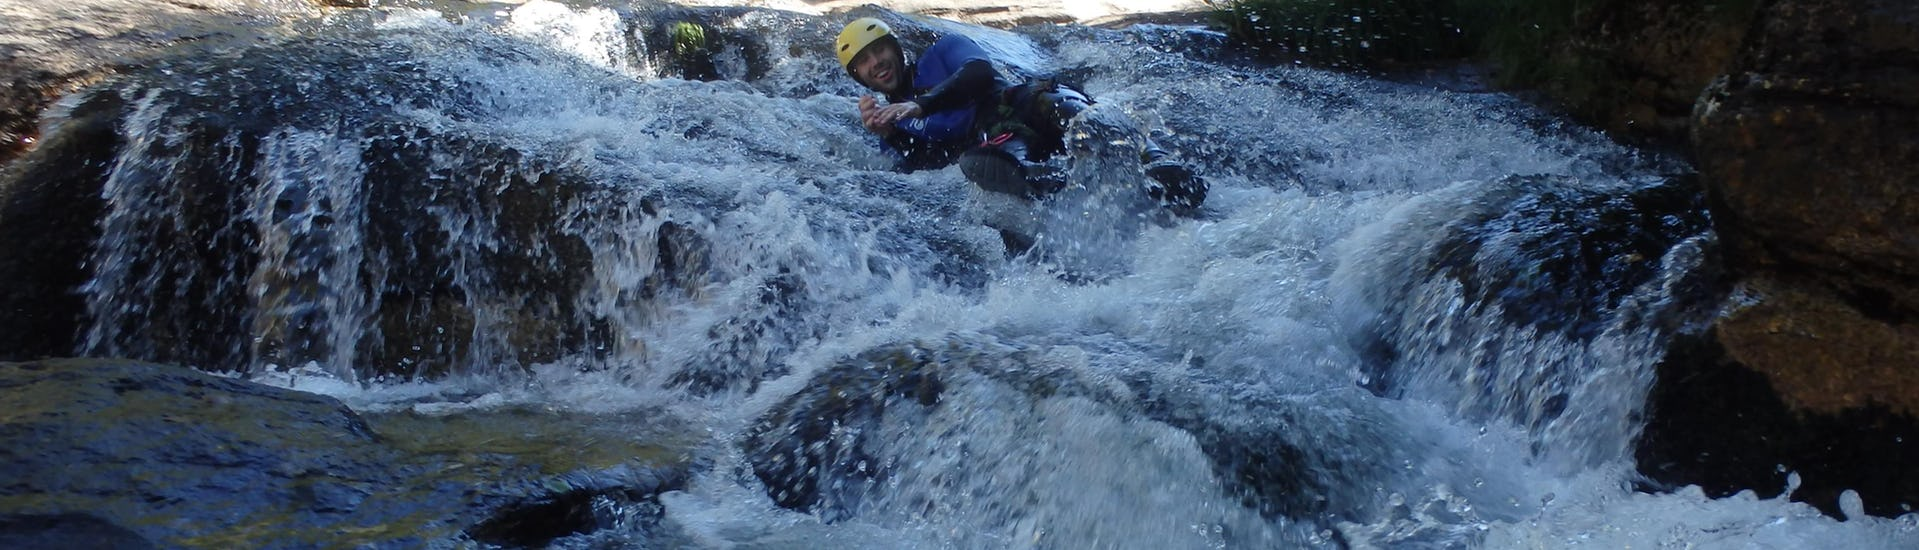 """Canyoning """"Family & Friends"""" - Río Almofrei"""